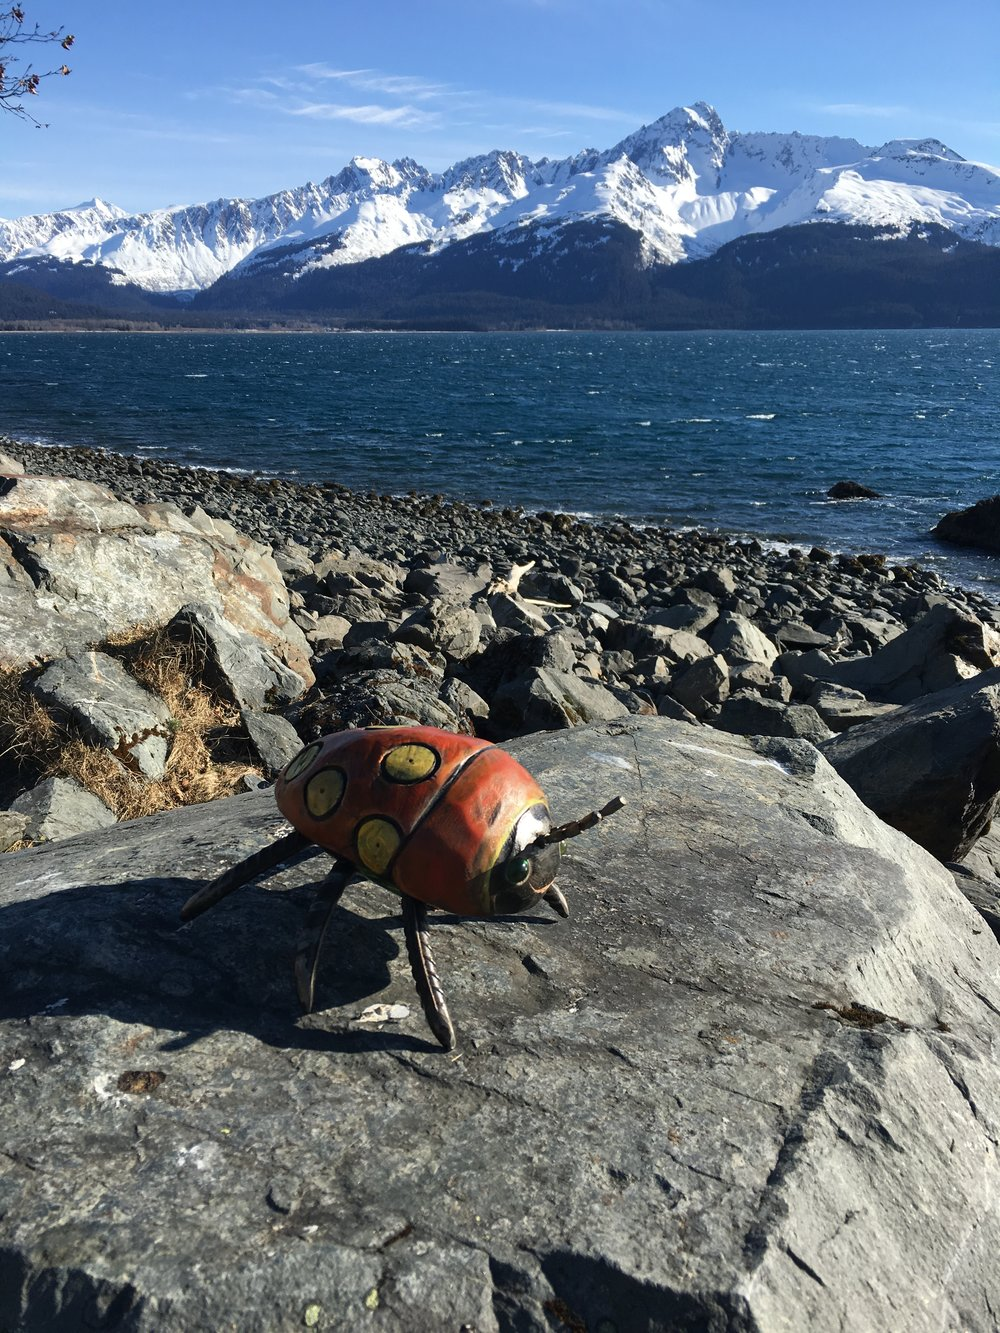 this bug traveled all the way to alaska! - Far, far and away.